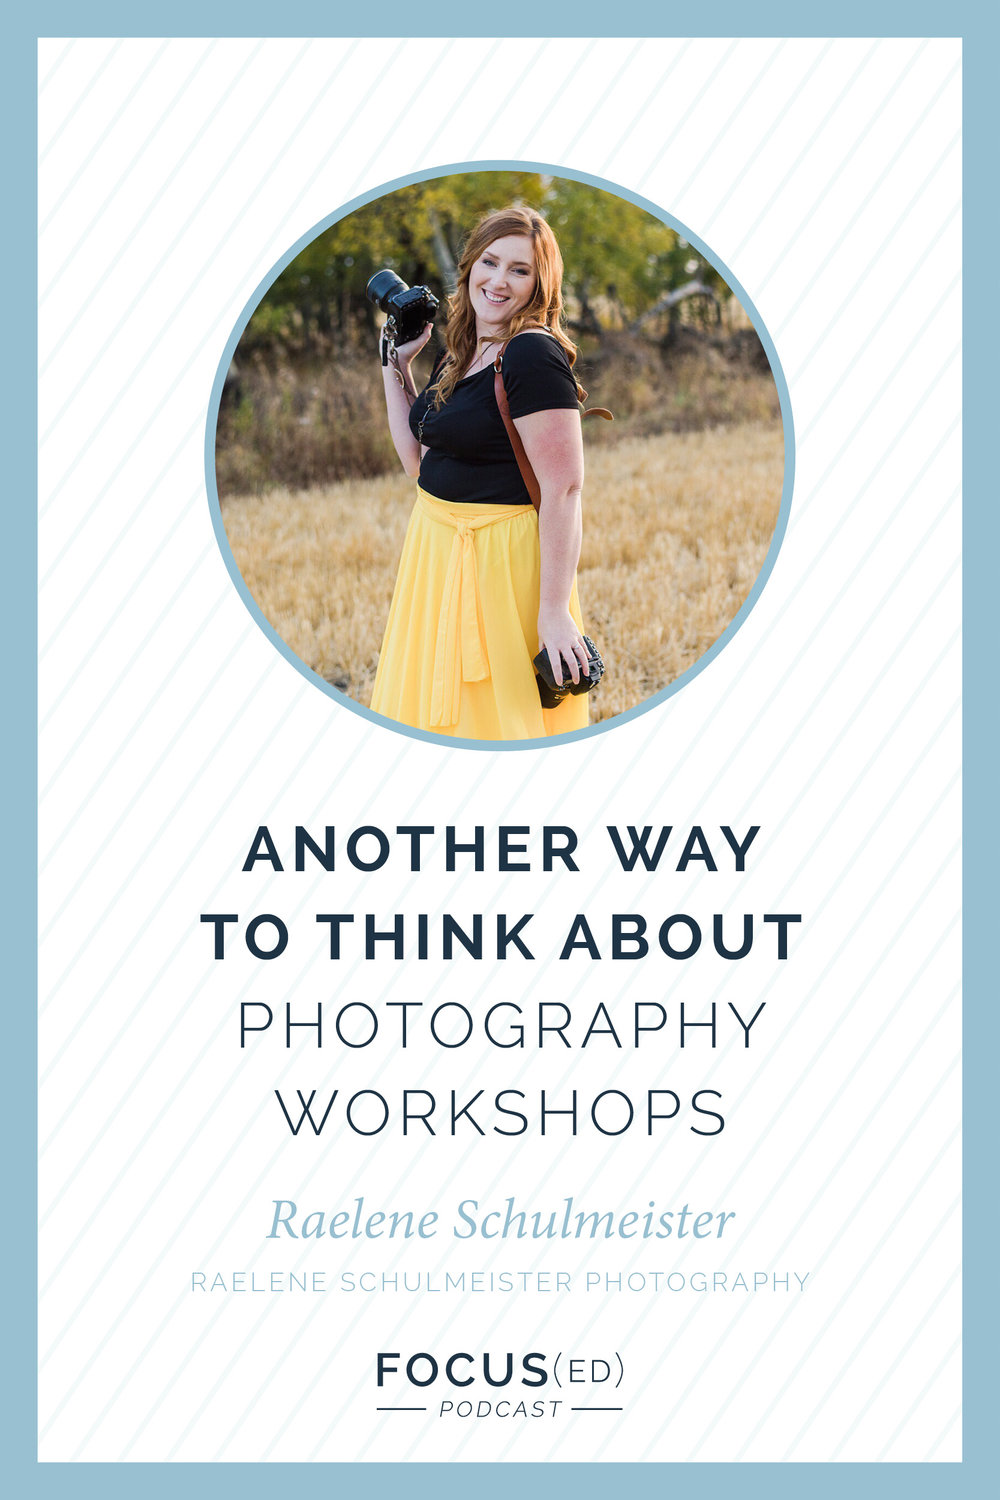 Another way to think about photography workshops, Raelene Schulmeister  |  Focus(ed) Podcast Ep. 075